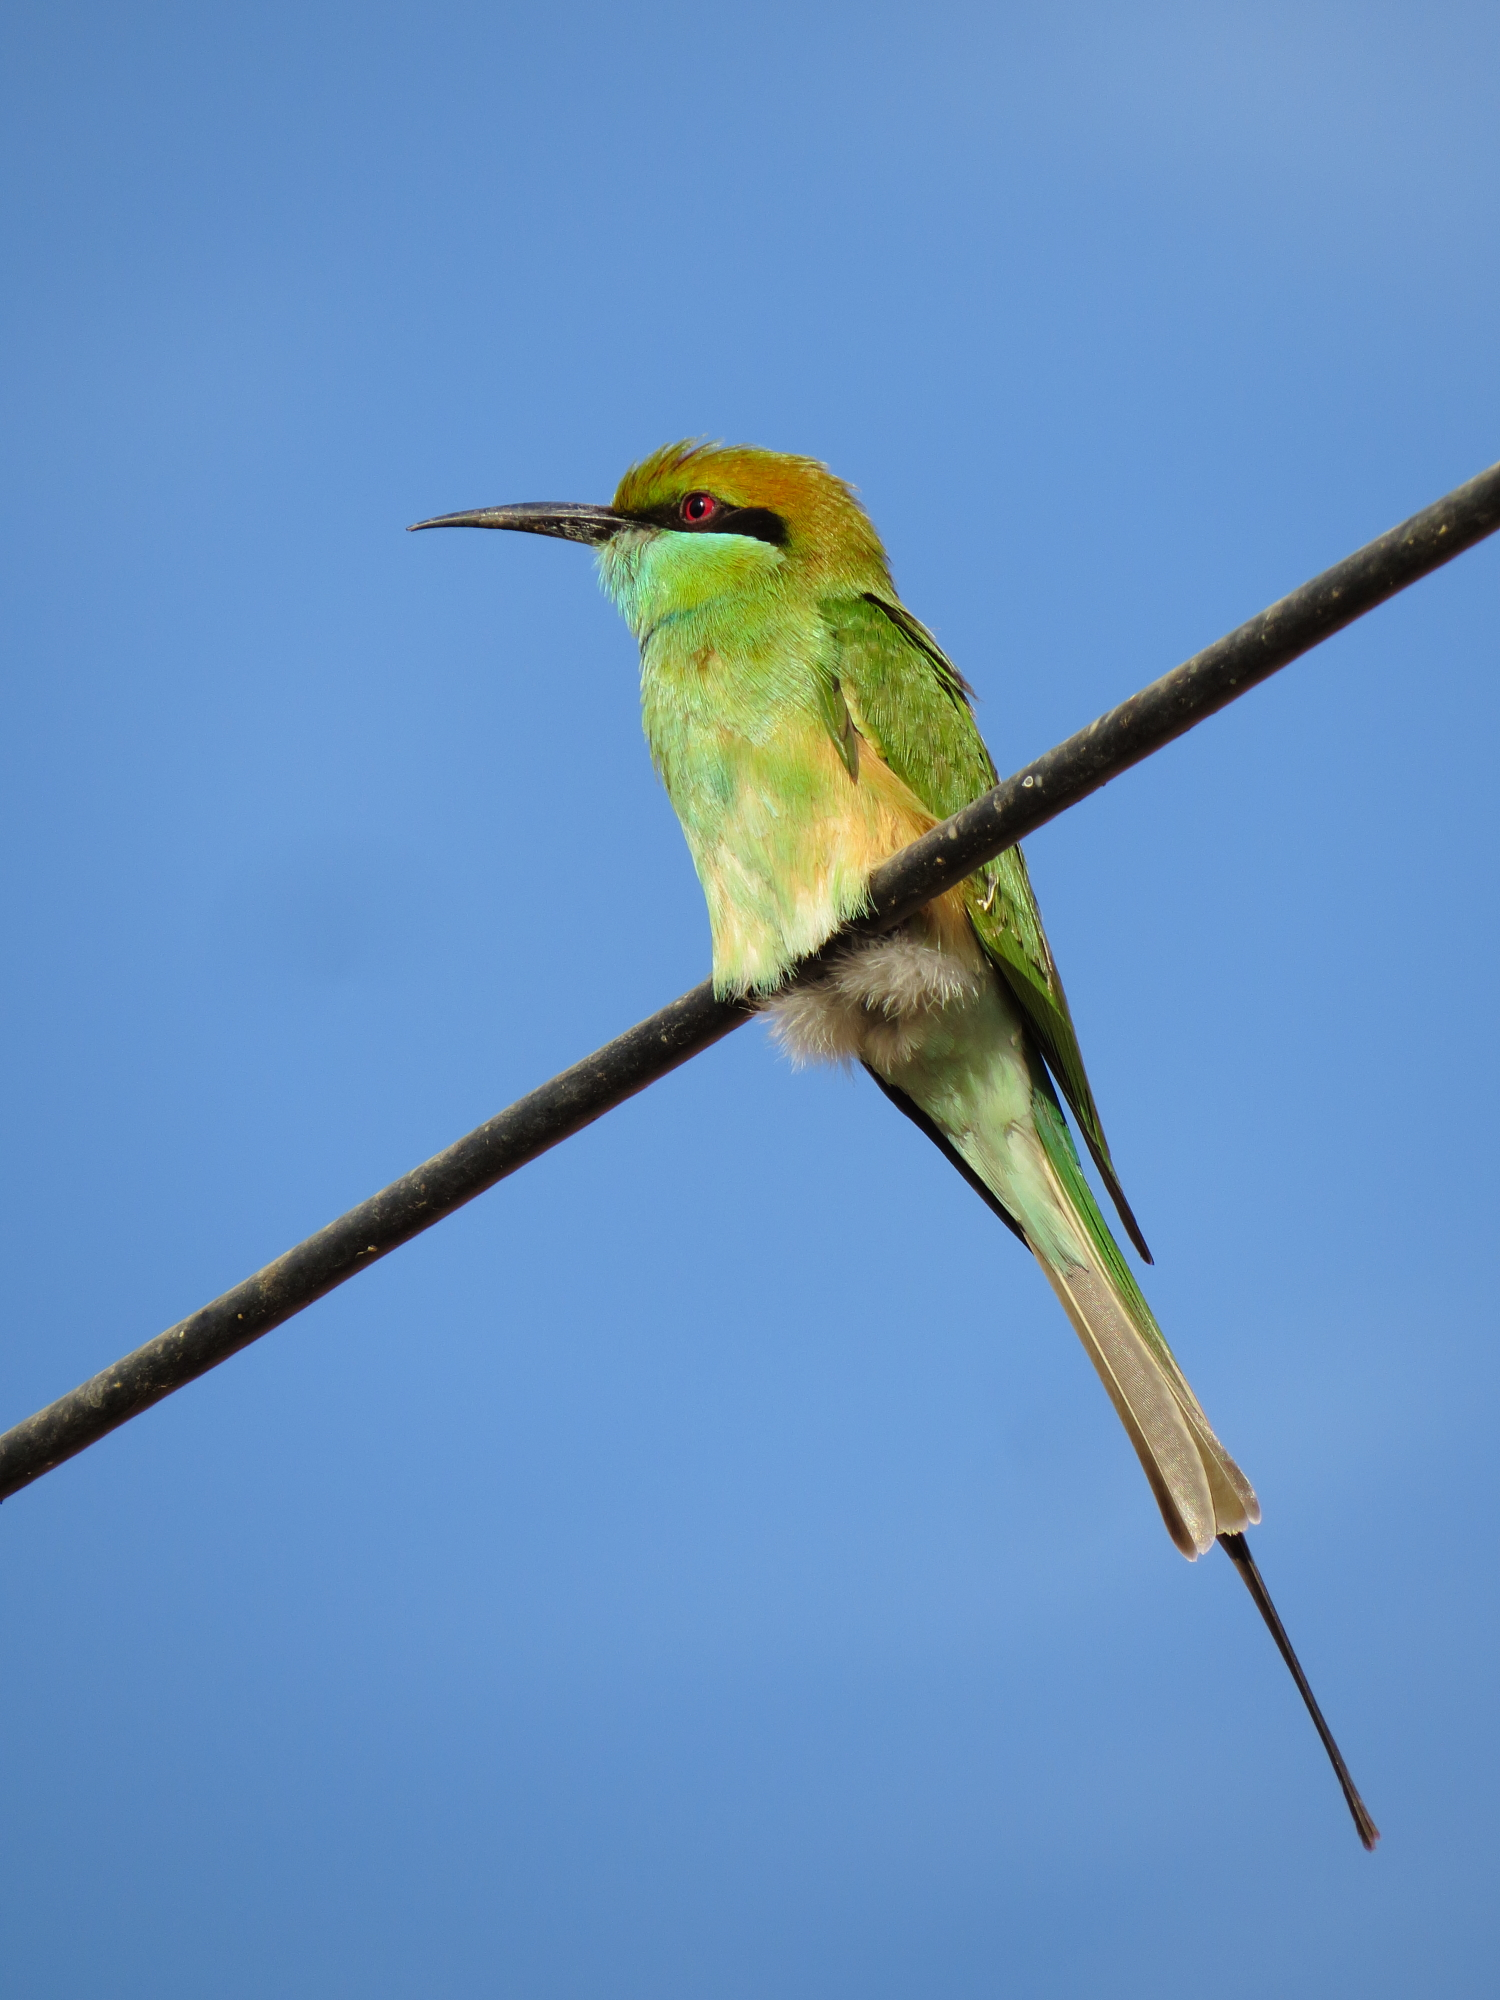 File:Green Bee eater perched on electric wire.JPG - Wikimedia Commons